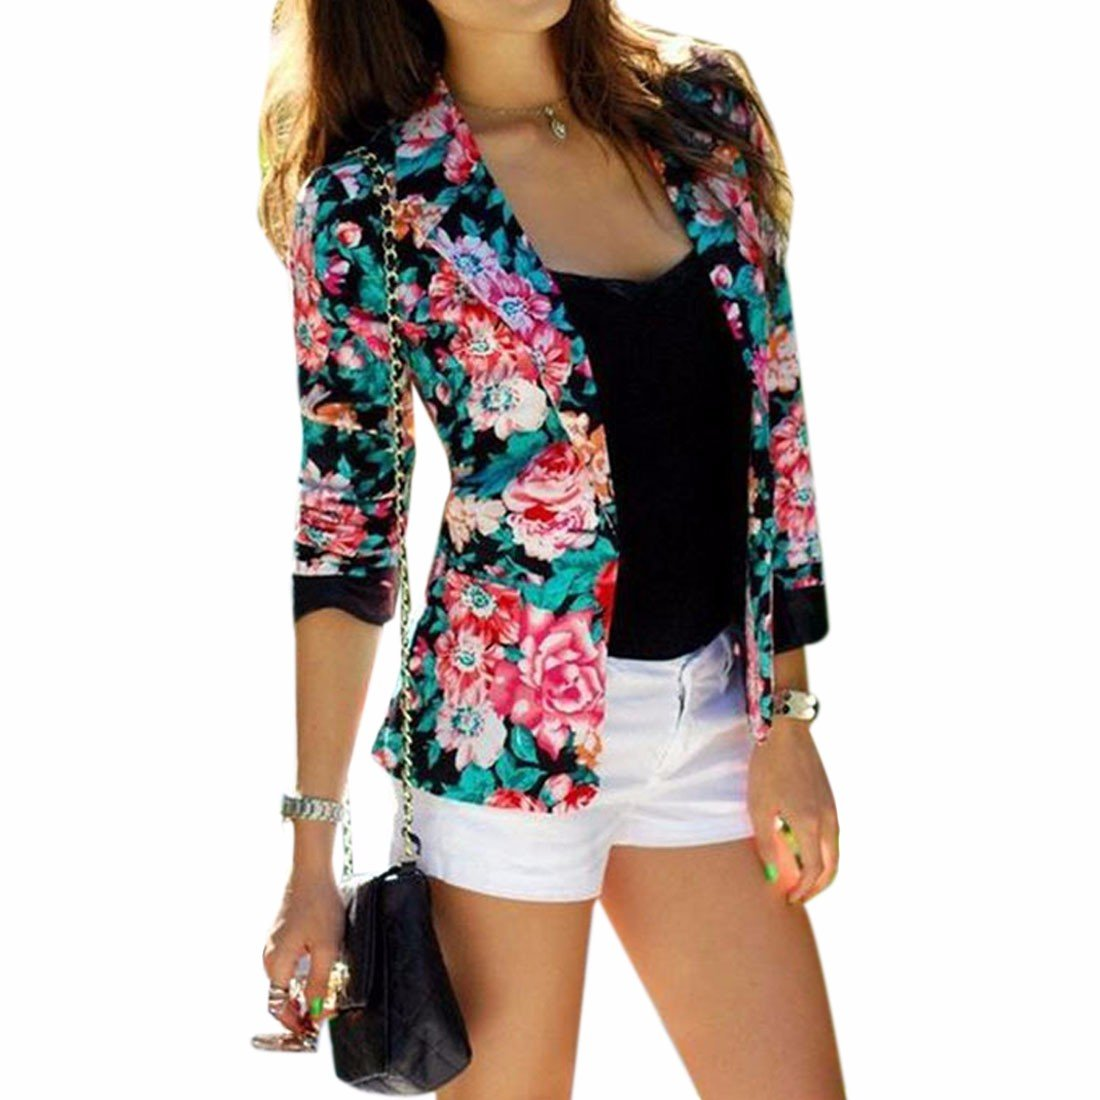 Fashion flower printed flower pattern short suit jacket long sleeve overcoat 1001C1716